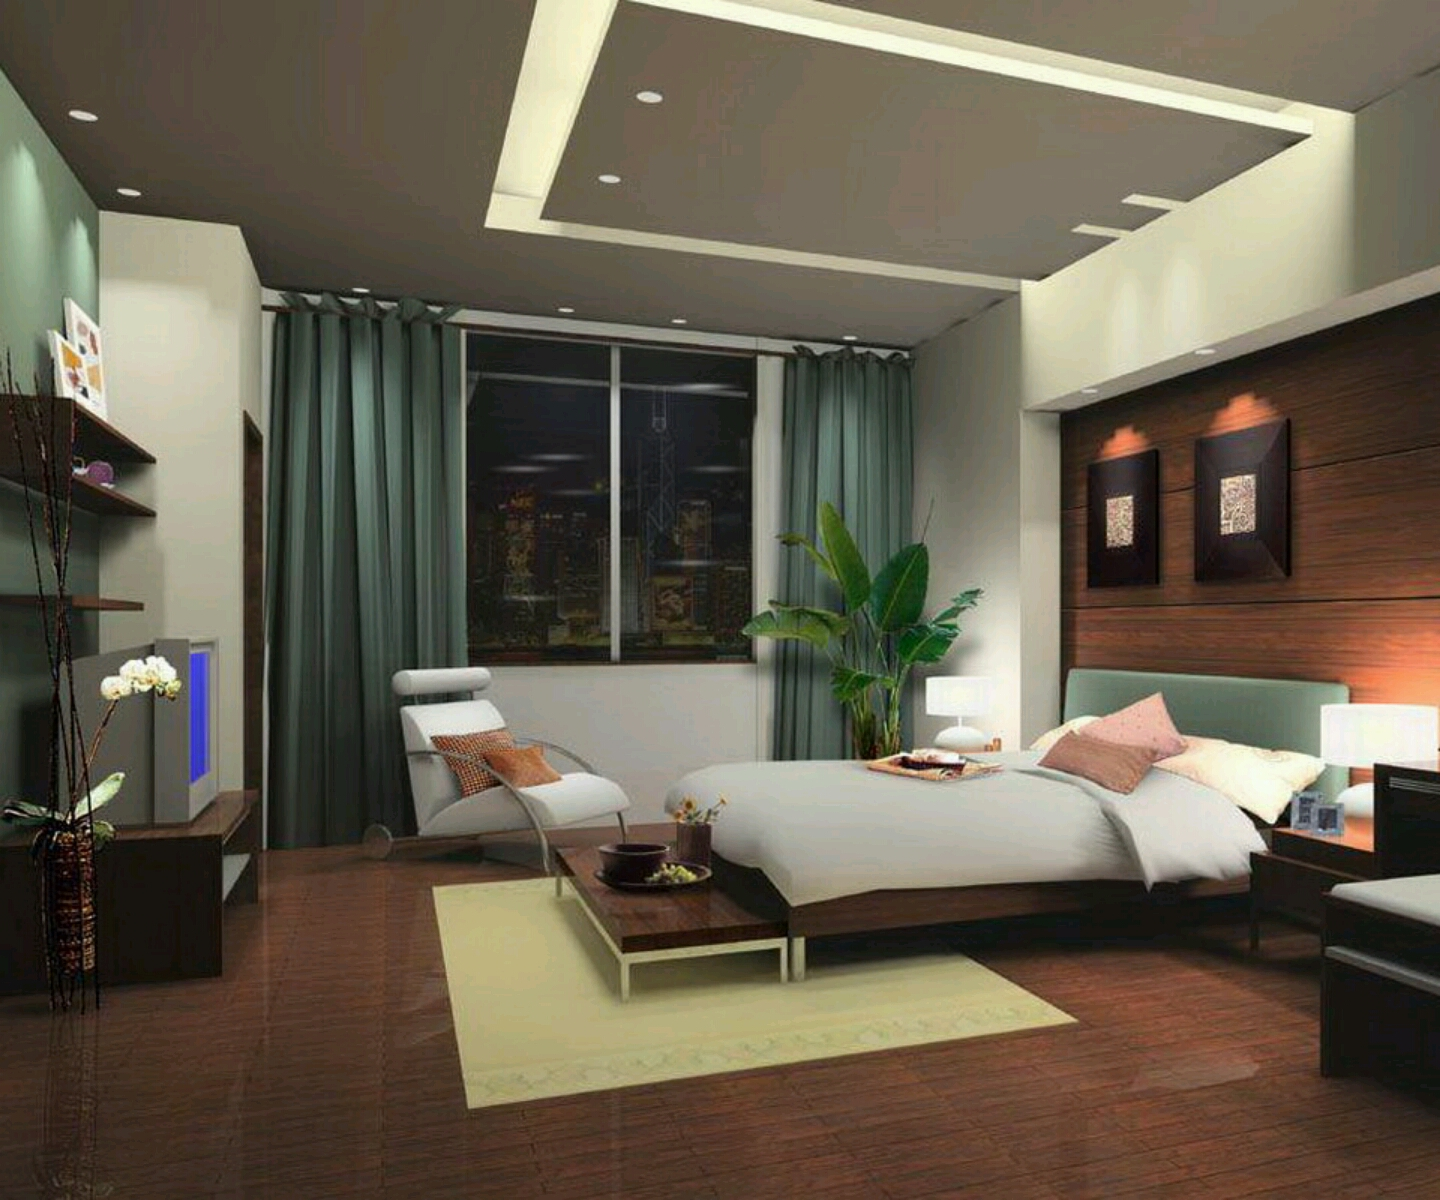 Modern+bedrooms+designs+best+ideas